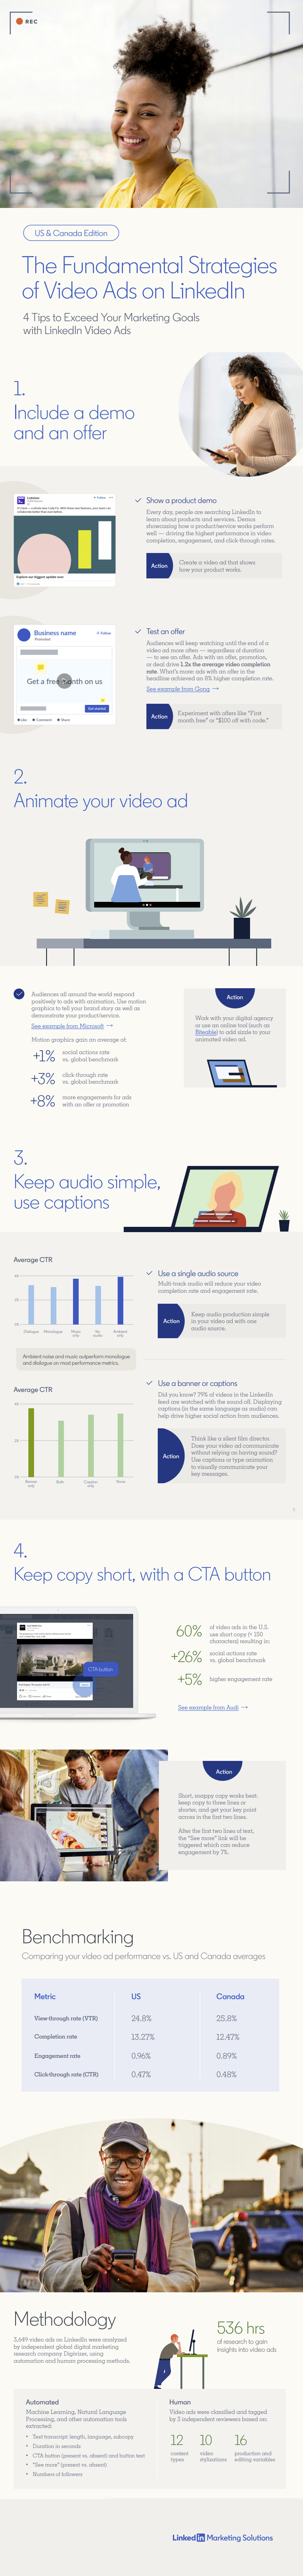 LinkedIn infographic of video ad tips